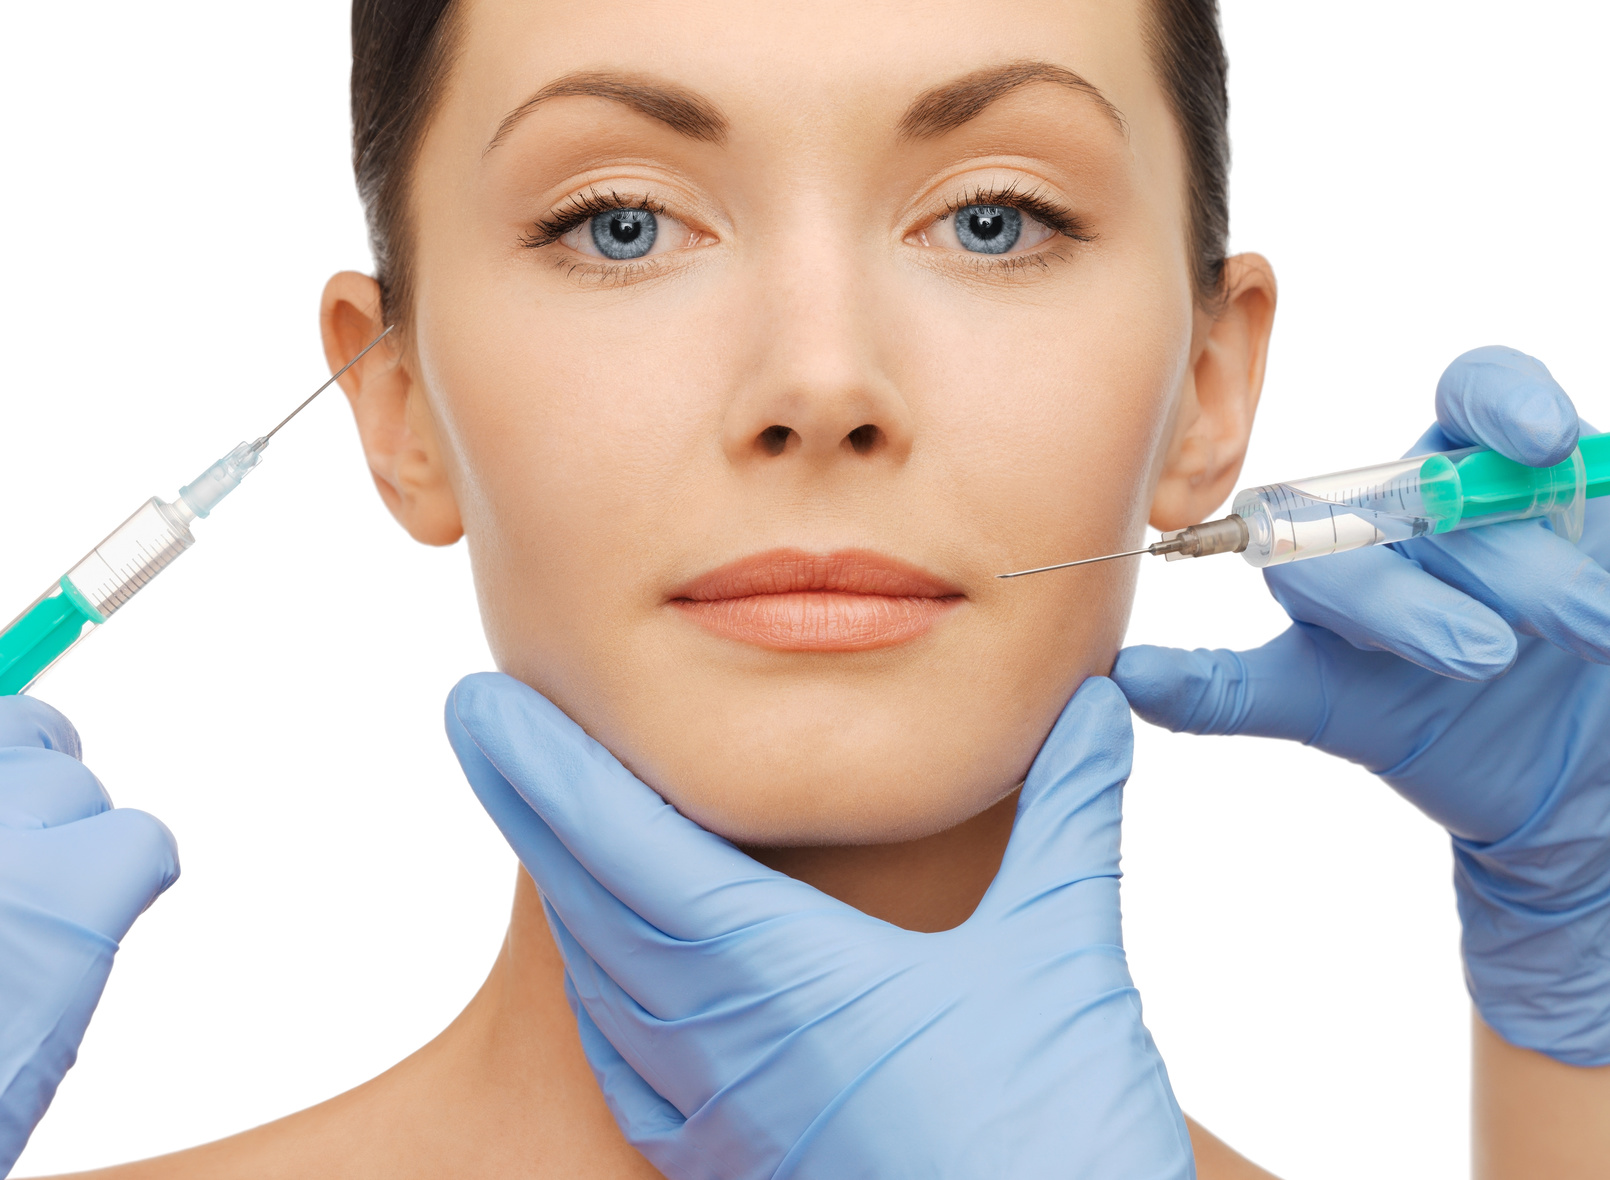 risks of botox injections